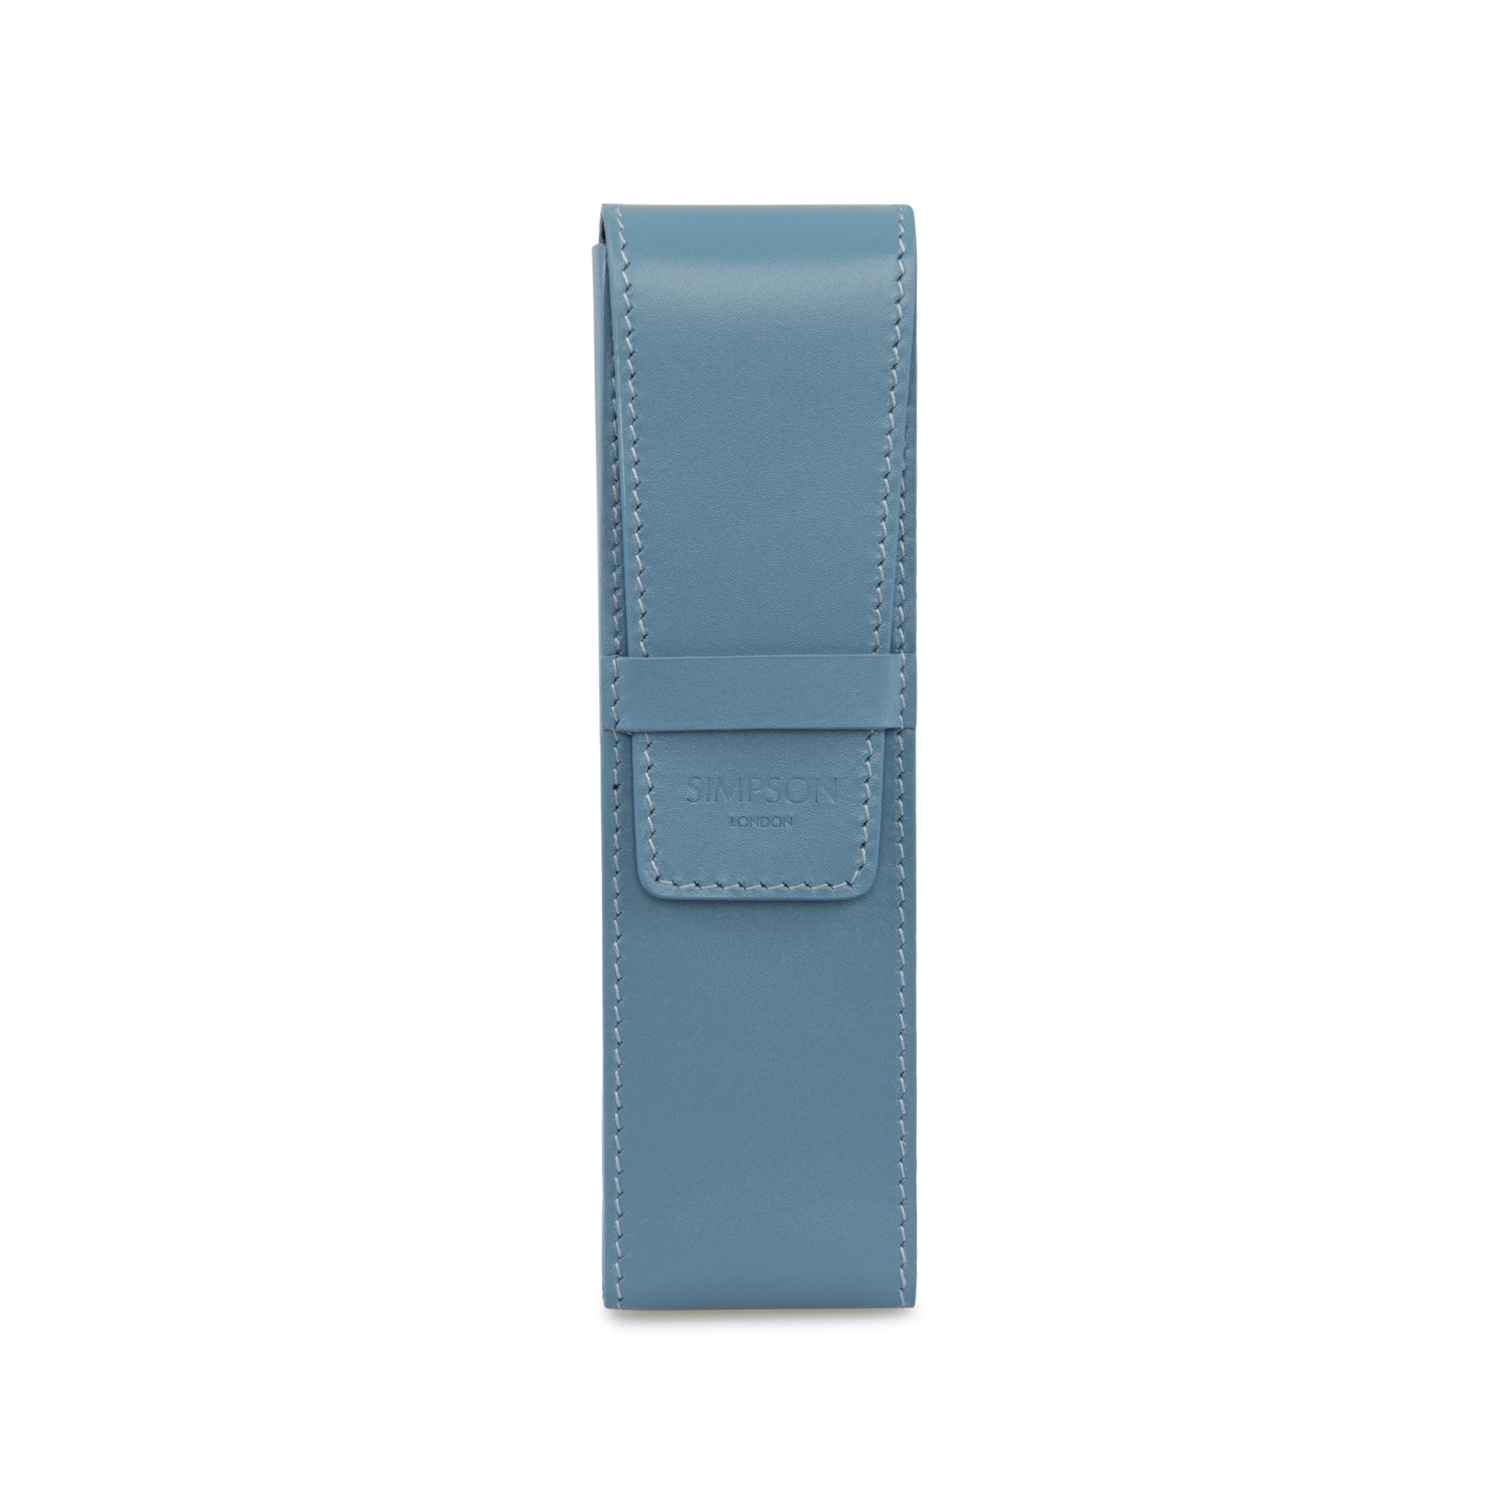 Baby Blue Pen Pen Case Sky Blue Simpson London Luxury Leather Goods And Bespoke British Craftsmanship